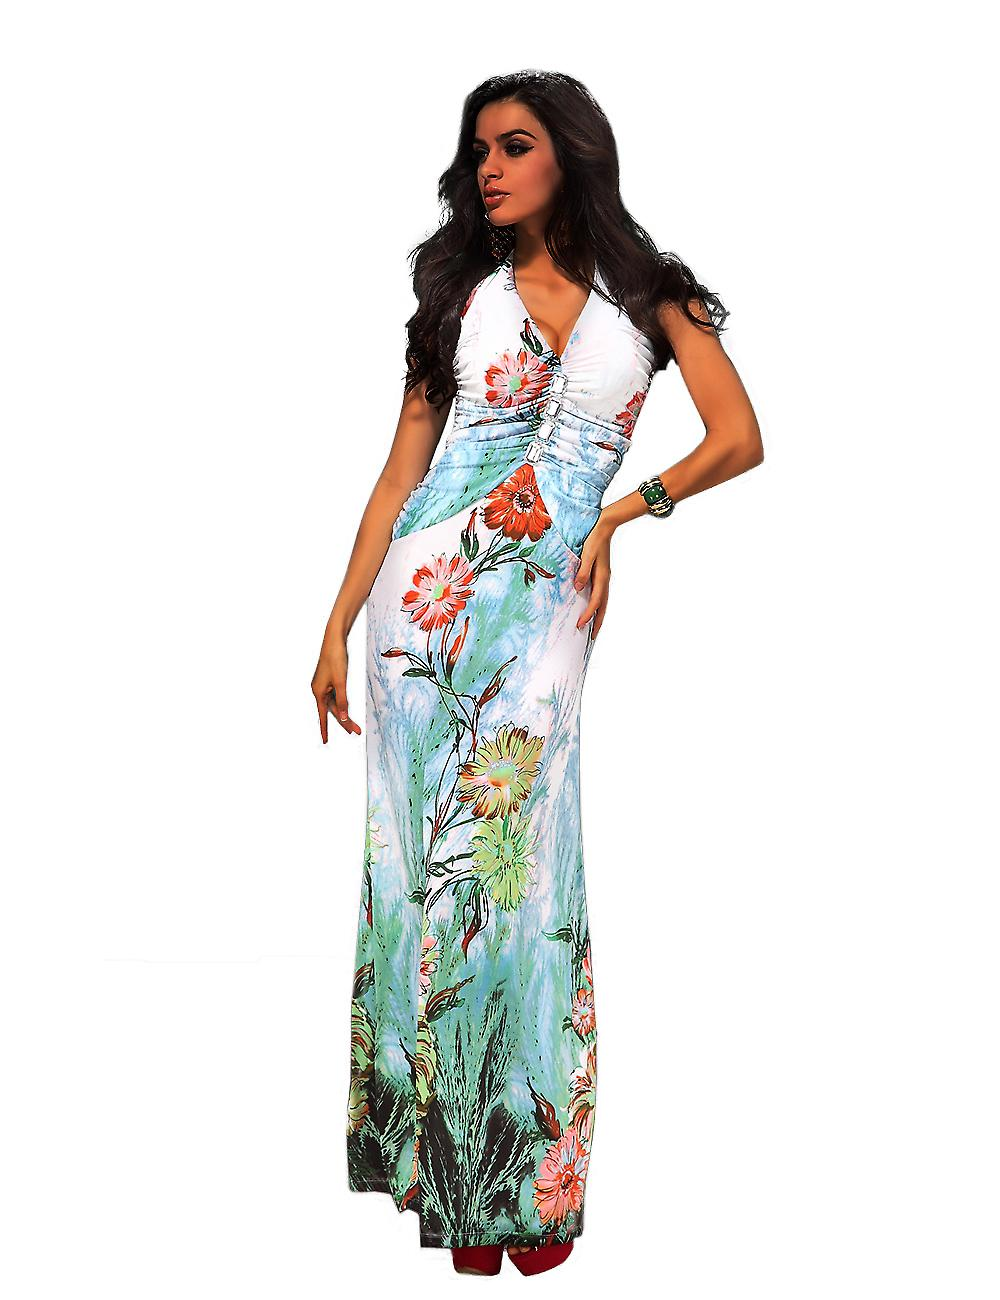 Waooh - Fashion - Dress long flower motifs